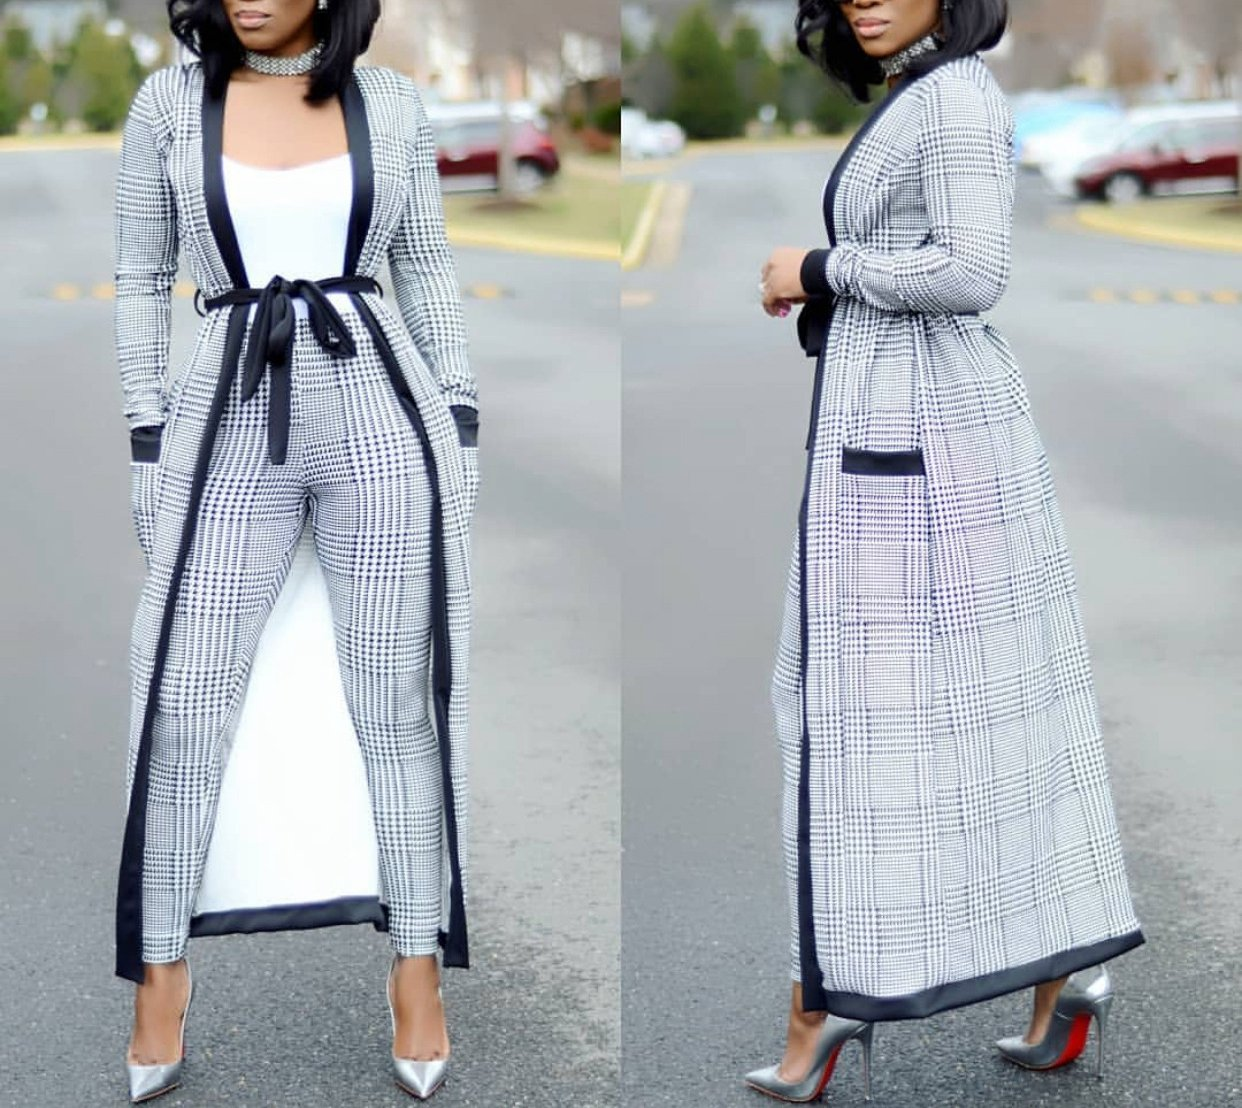 VERWIN Long Sleeve Plaid Tops and High Waist Skinny Pants Houndstooth Blazer Outfit 3 Sets XL by VERWIN (Image #2)